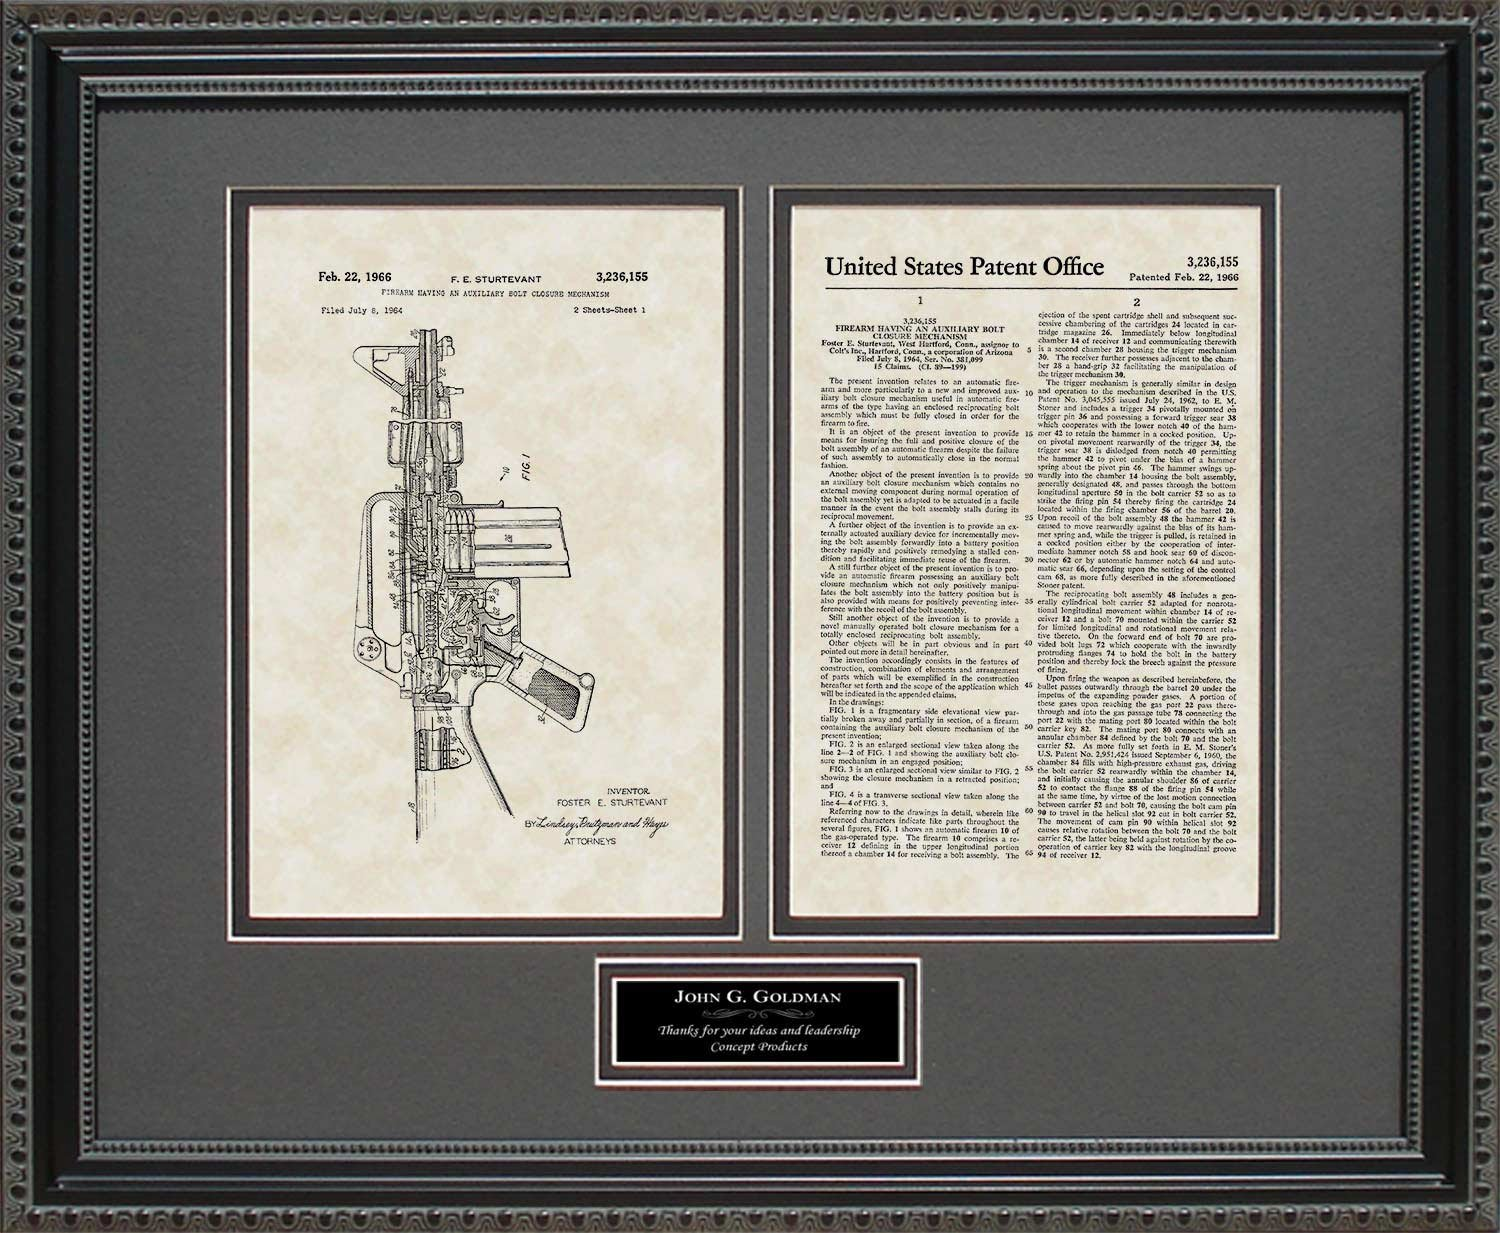 Amazoncom M16 Rifle Patent Art Wall Hanging Military Army Framed